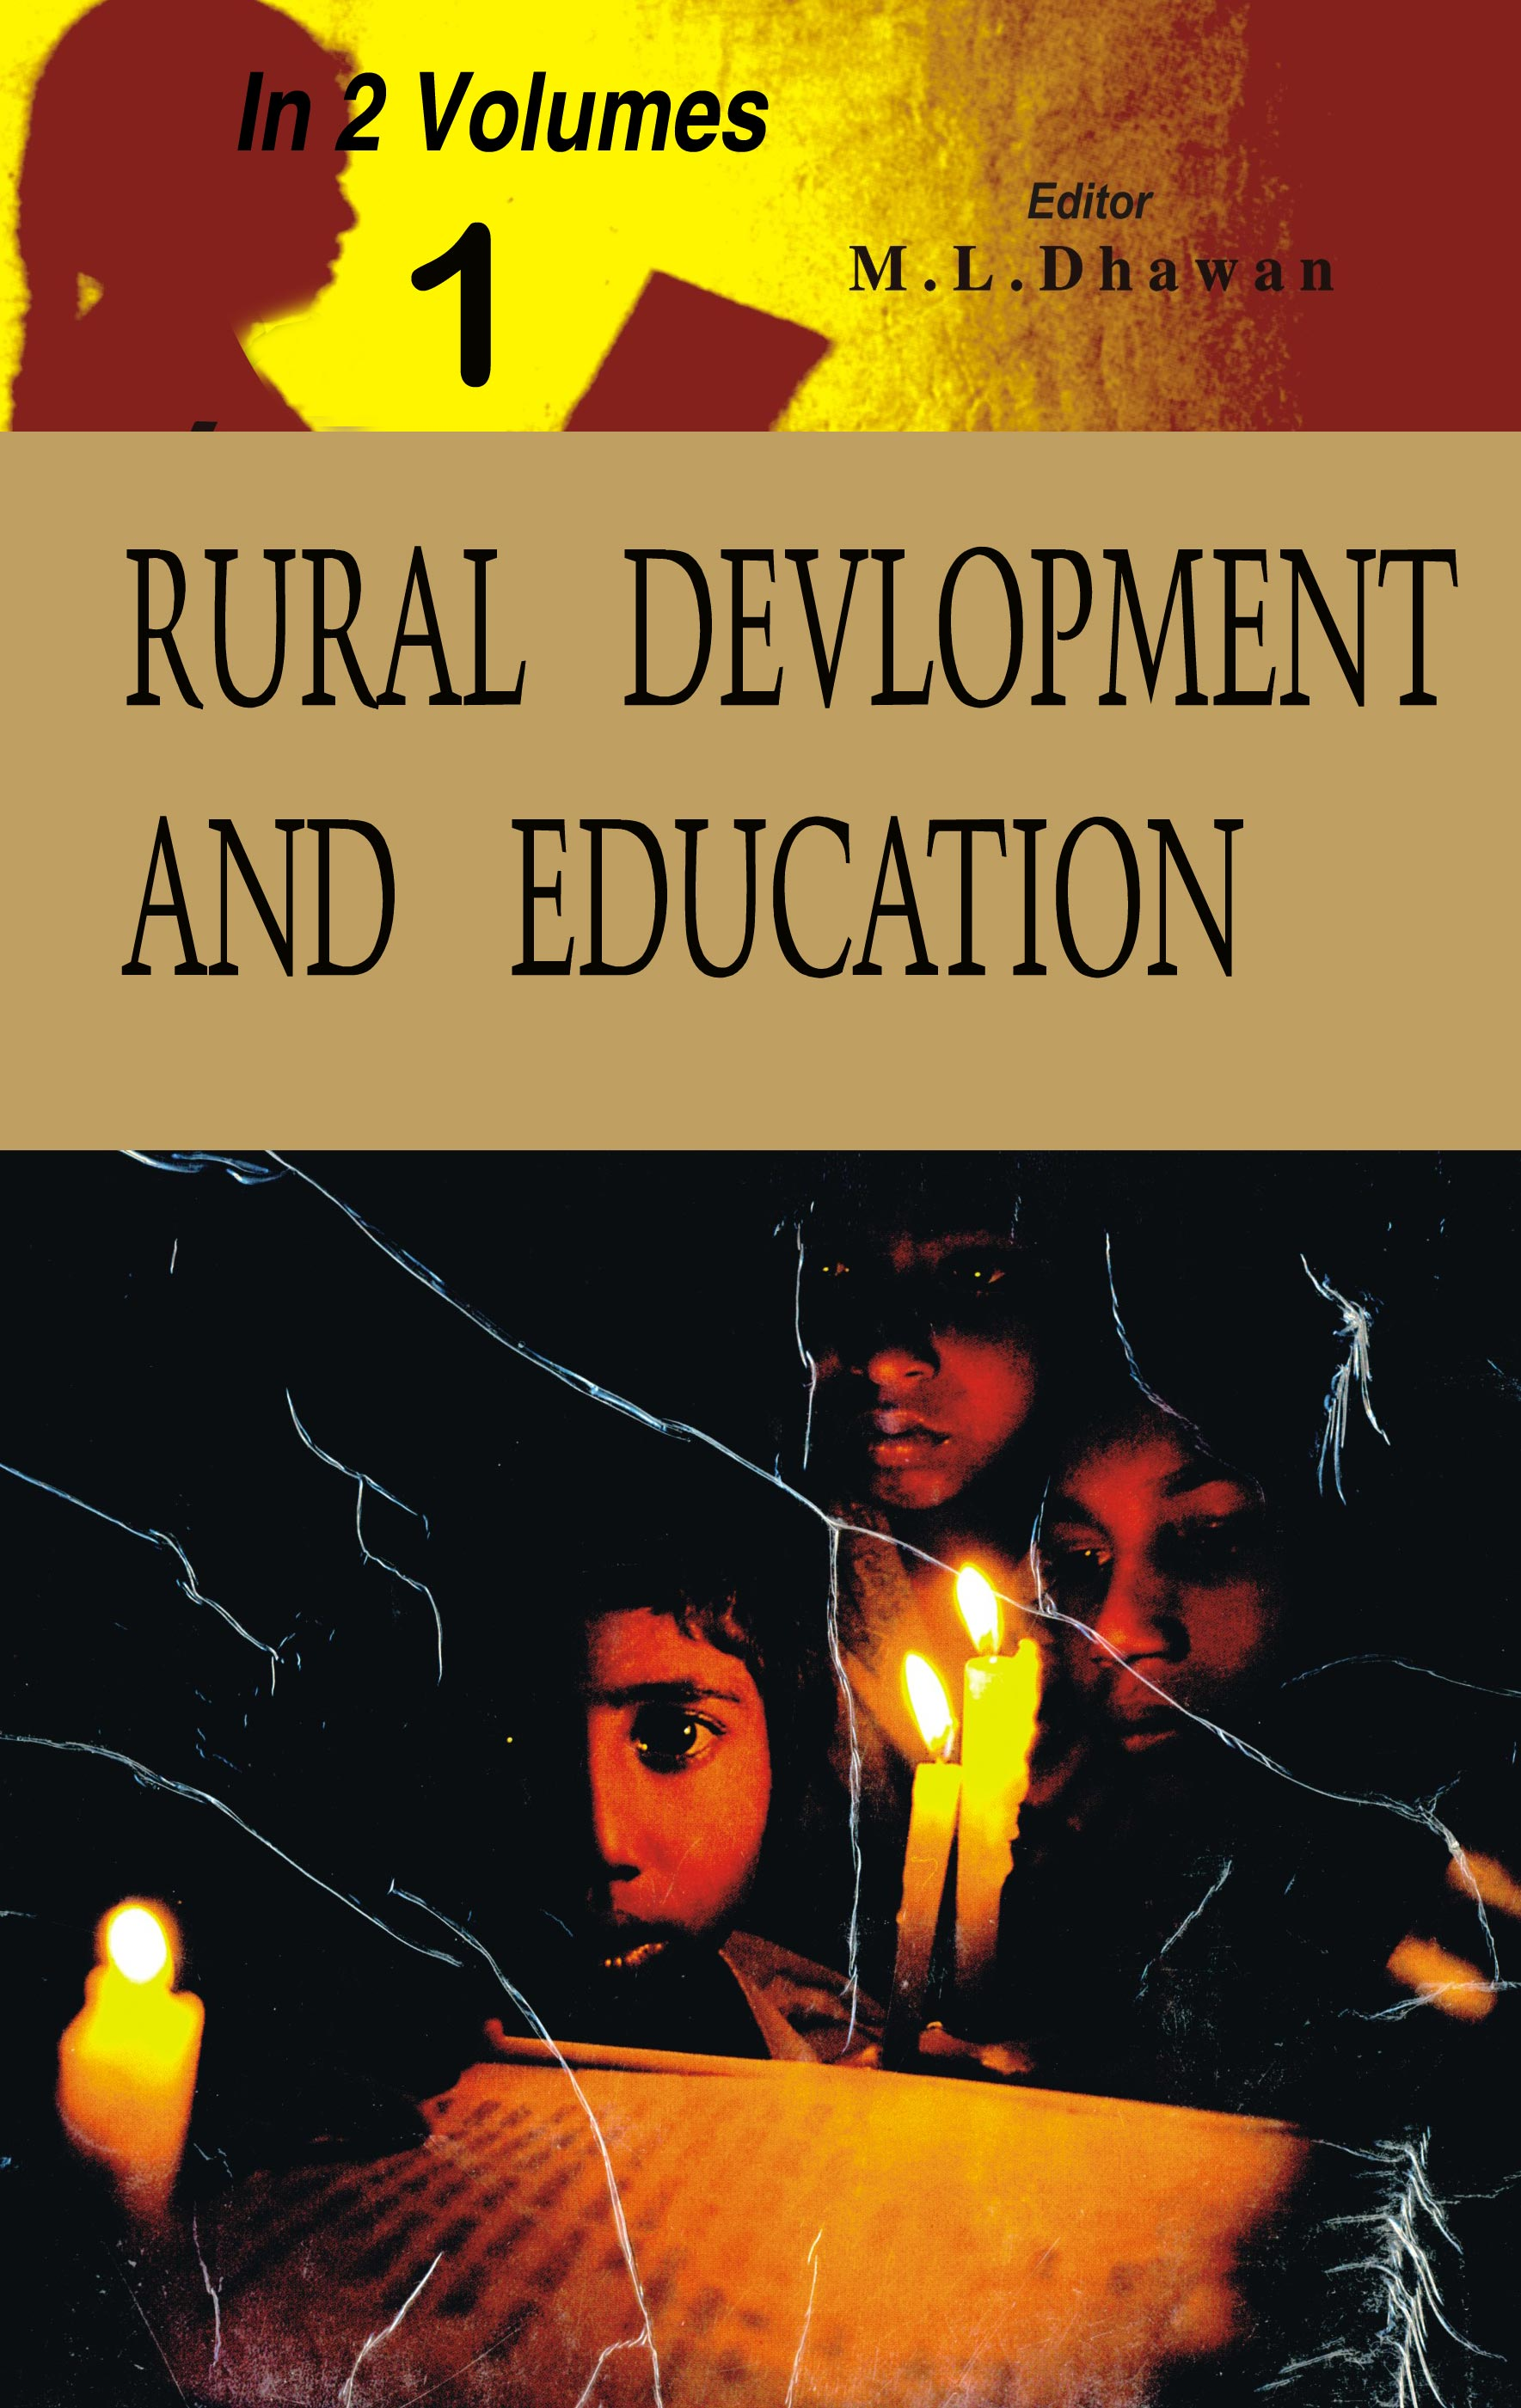 Rural Development And Education Vol-1